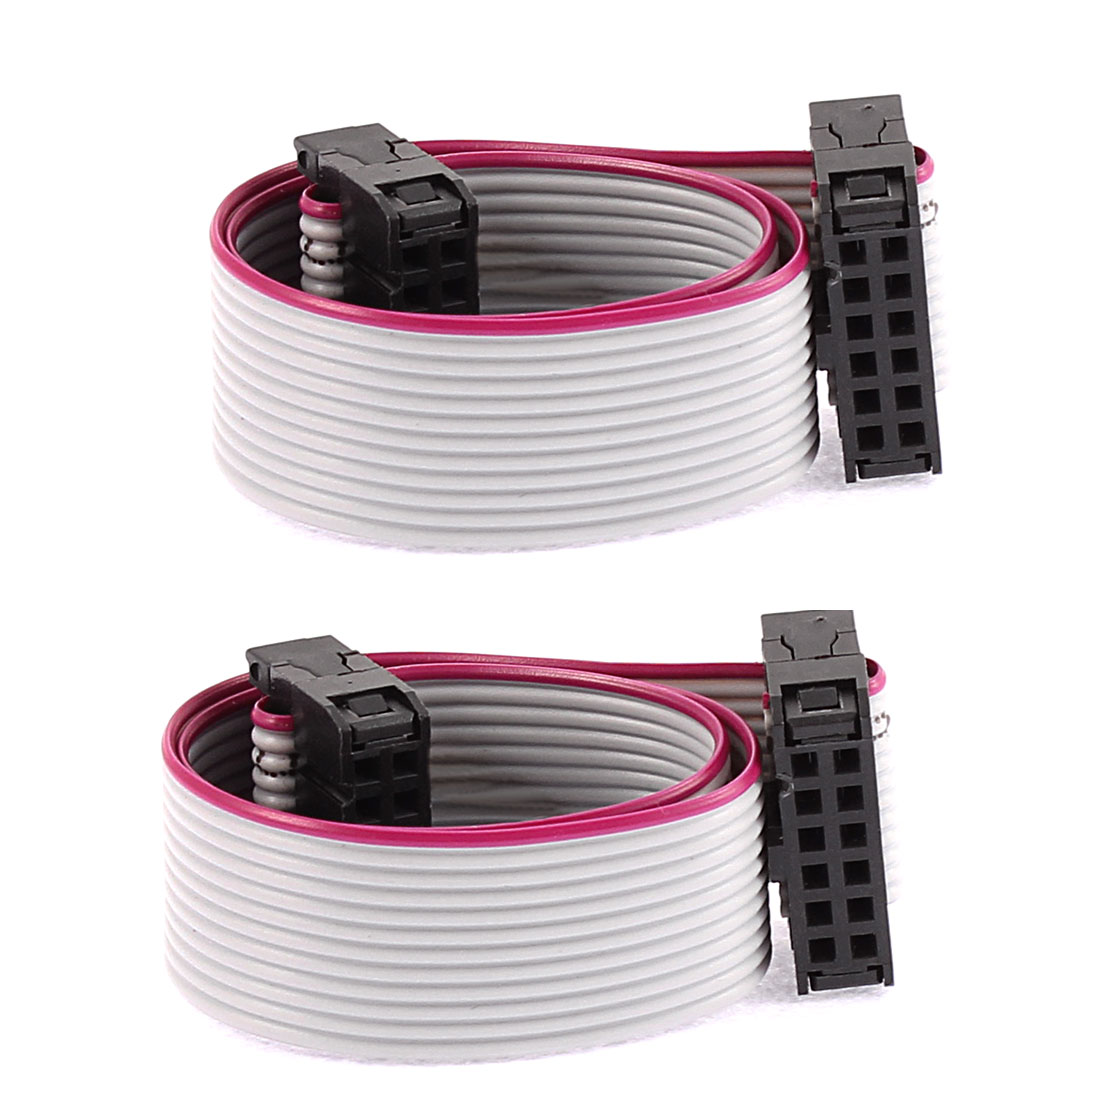 2.54mm Pitch 12 Pins 12 Wires F/F IDC Connector Flat Ribbon Cable 8 Inch 2 Pcs